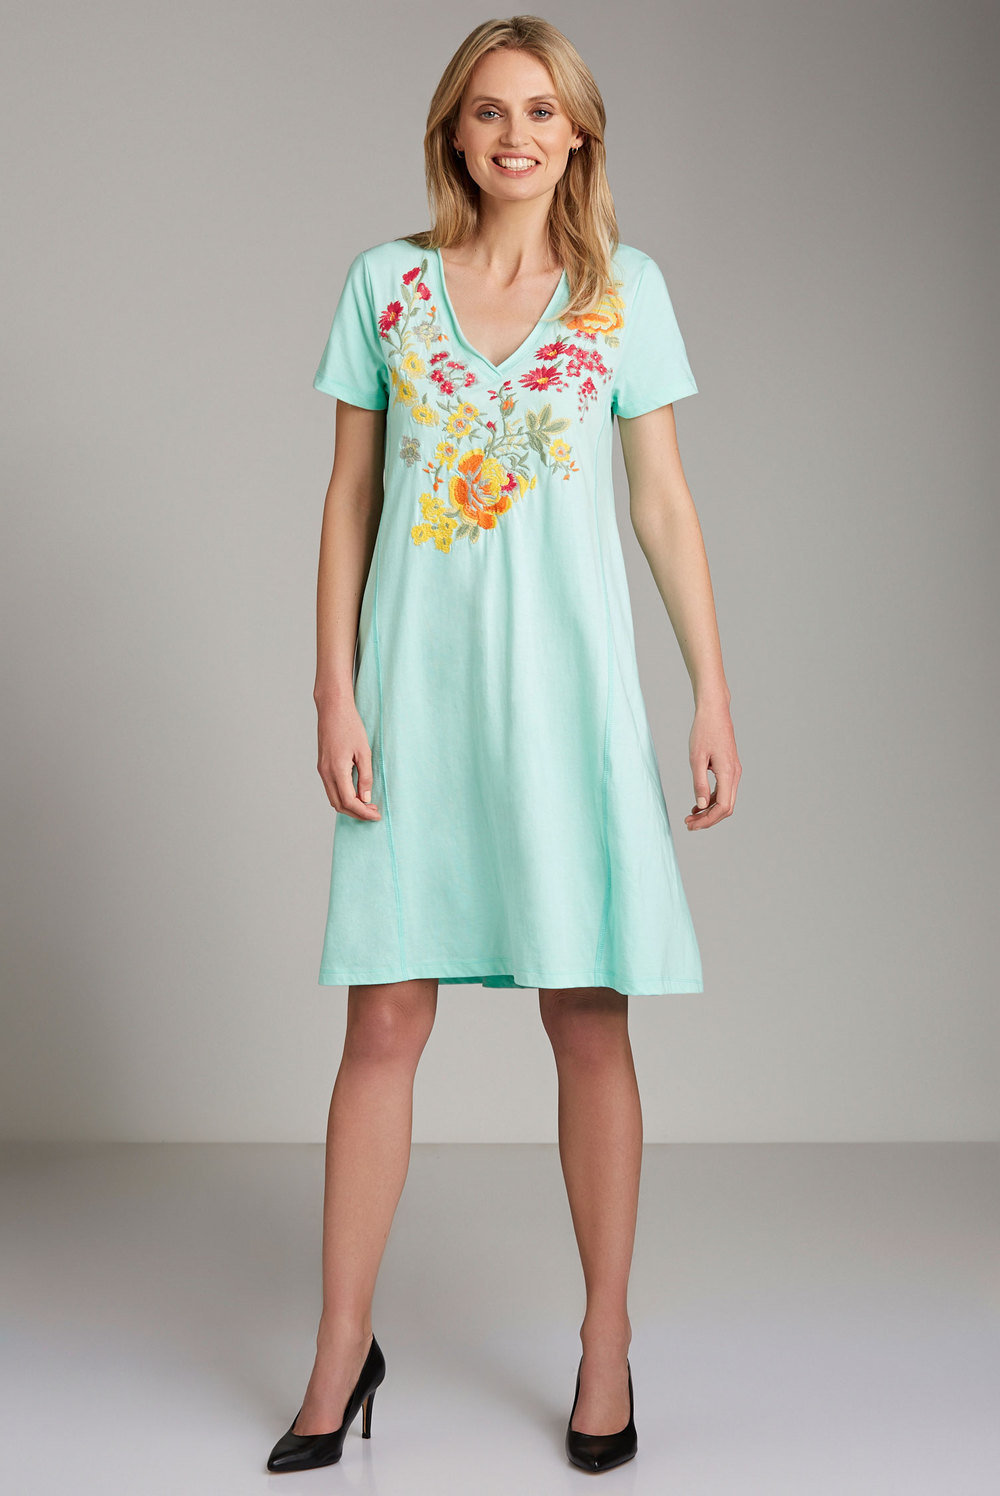 Emerge Embroidery Dress Online  c75abc3be